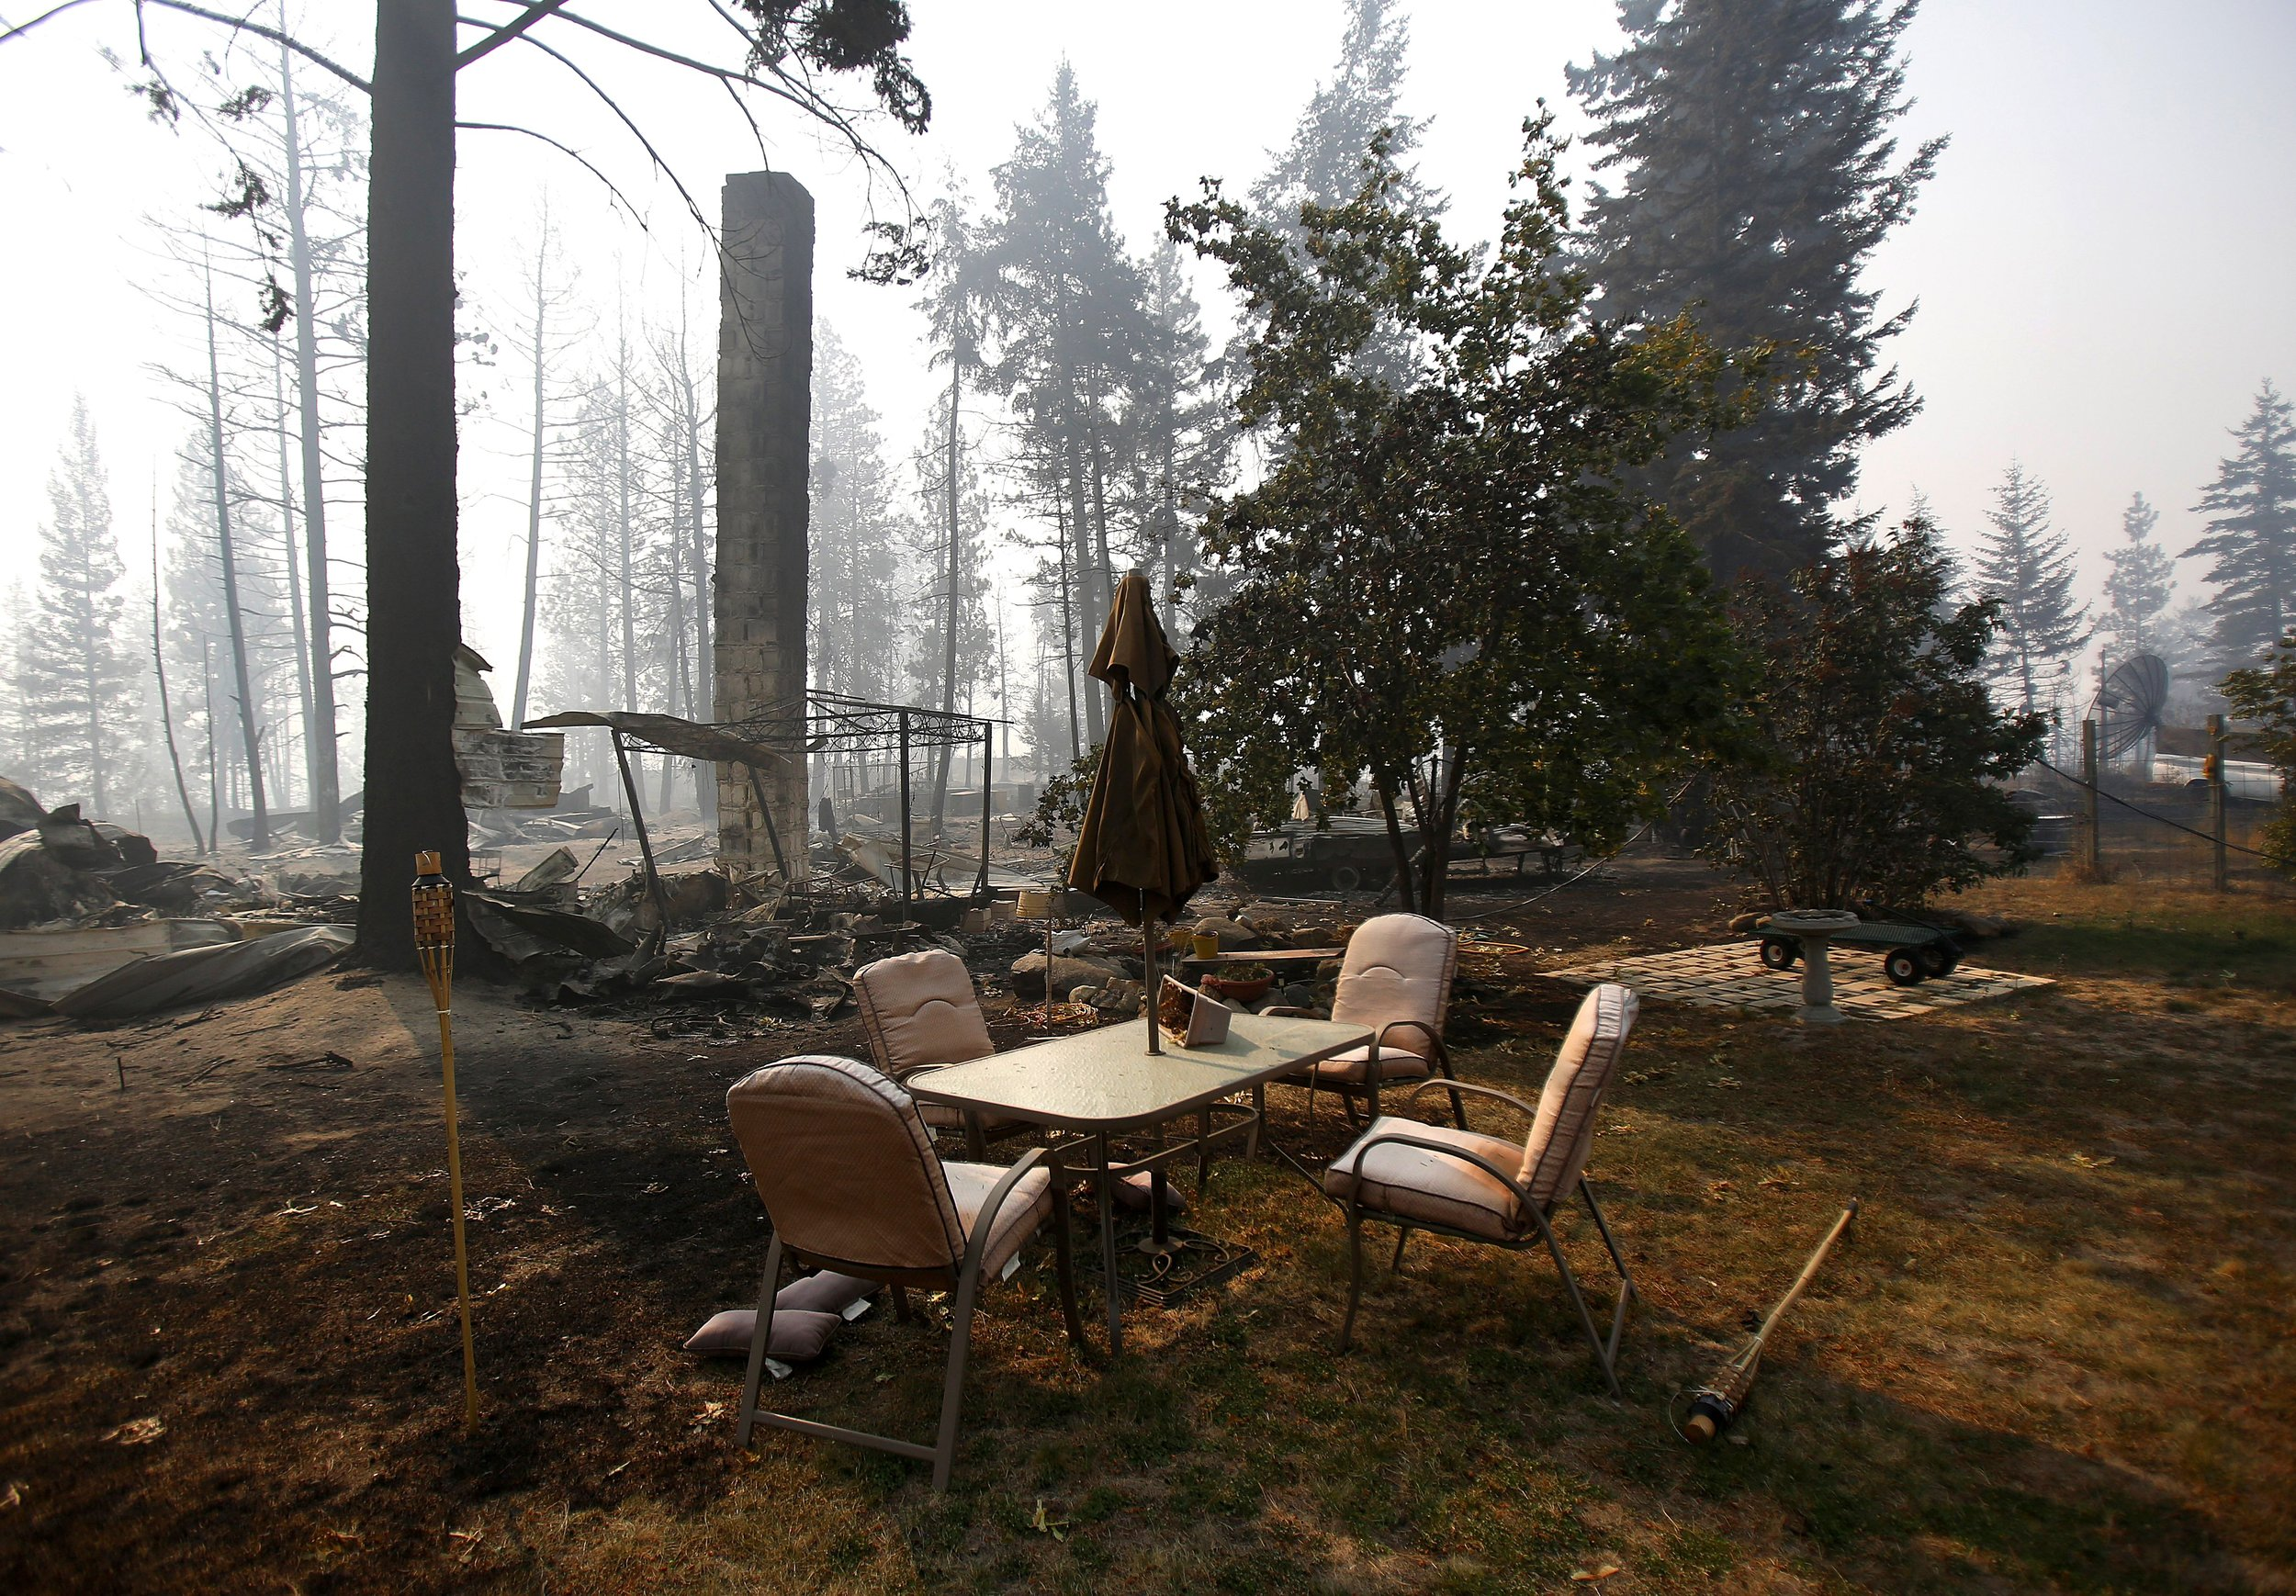 Patio furniture remains relatively untouched after a wildfire swept through the community on White Rock Road, destroying several houses, in Okanogan, Wash., Sunday, Aug. 23, 2015.